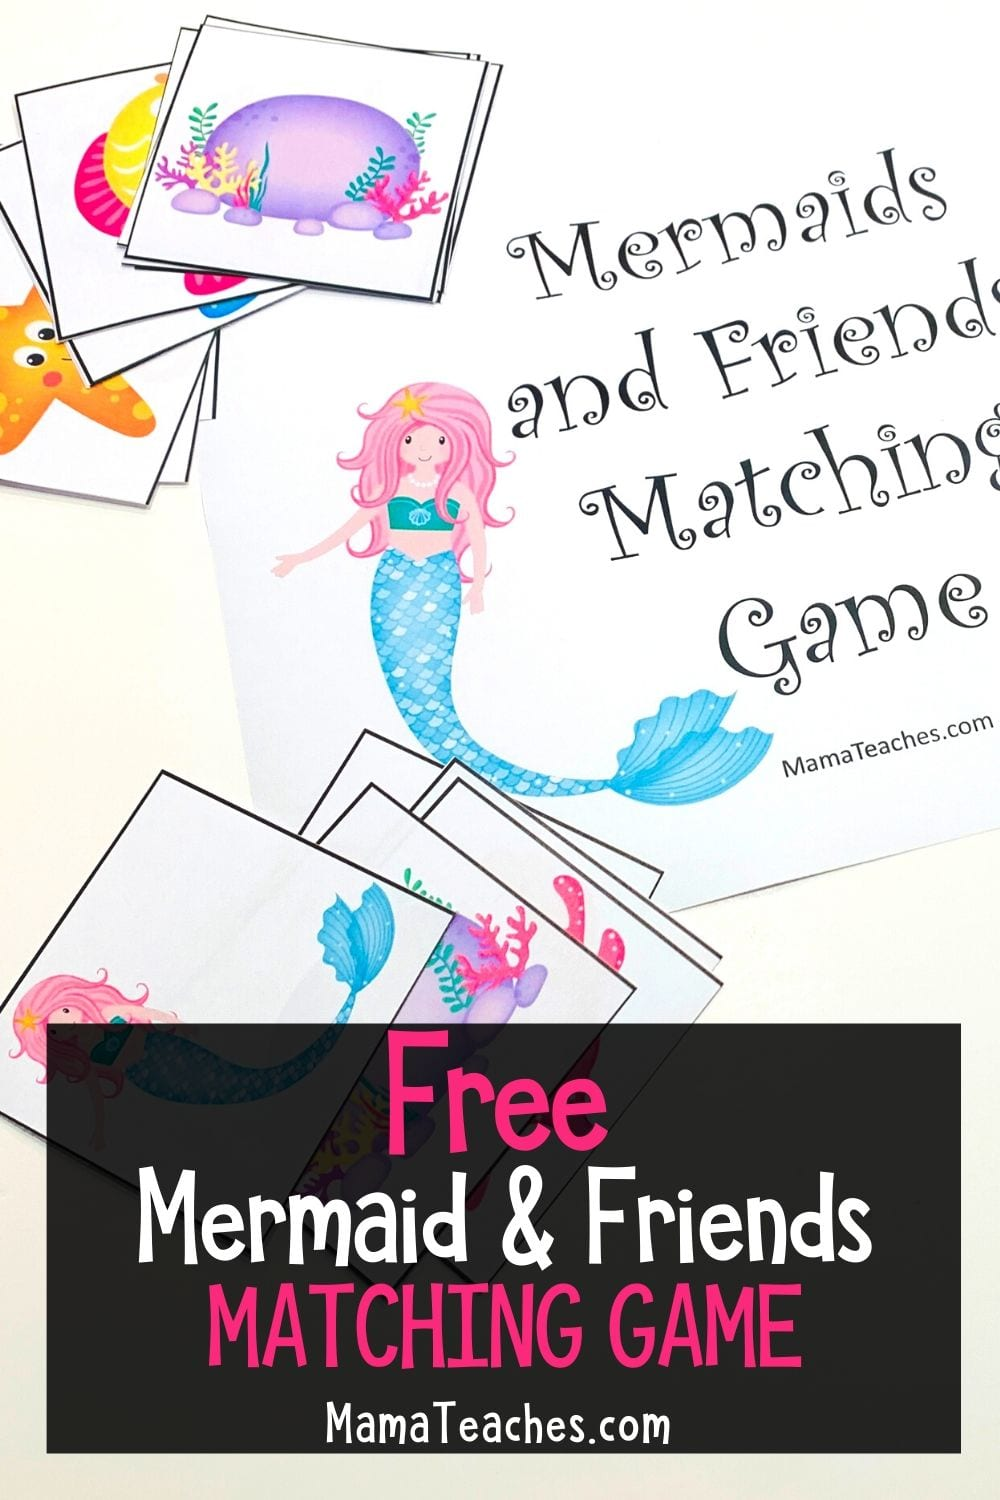 Free Mermaid Friends Matching Game - MamaTeaches.com